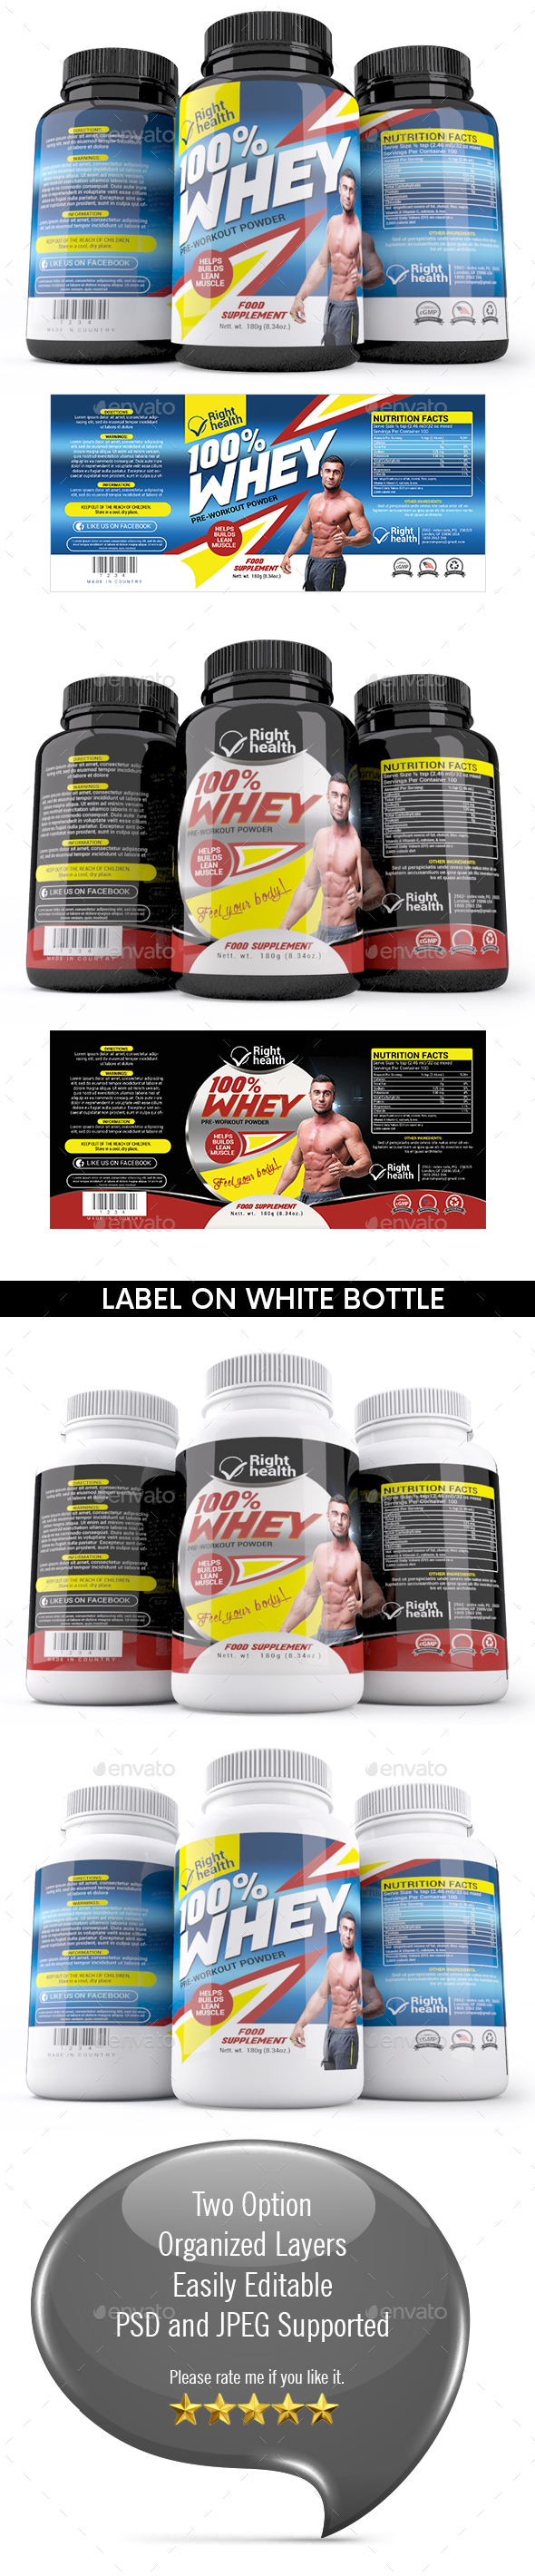 Supplement Label Template - 019